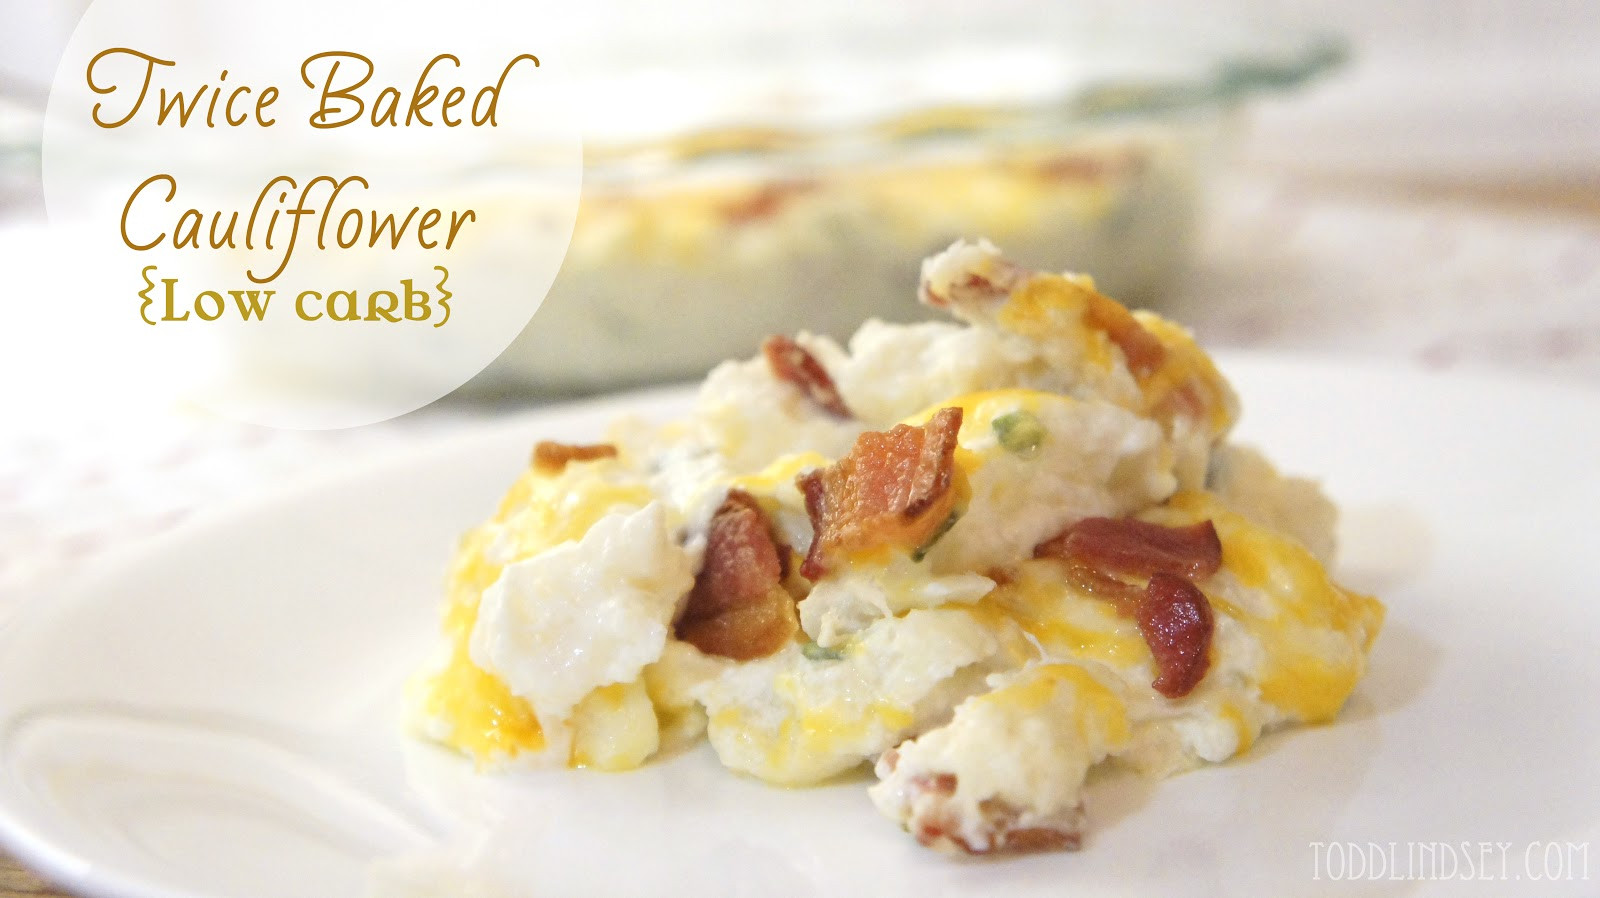 Is Cauliflower Low Carb  Domer Home Twice Baked Cauliflower Low Carb